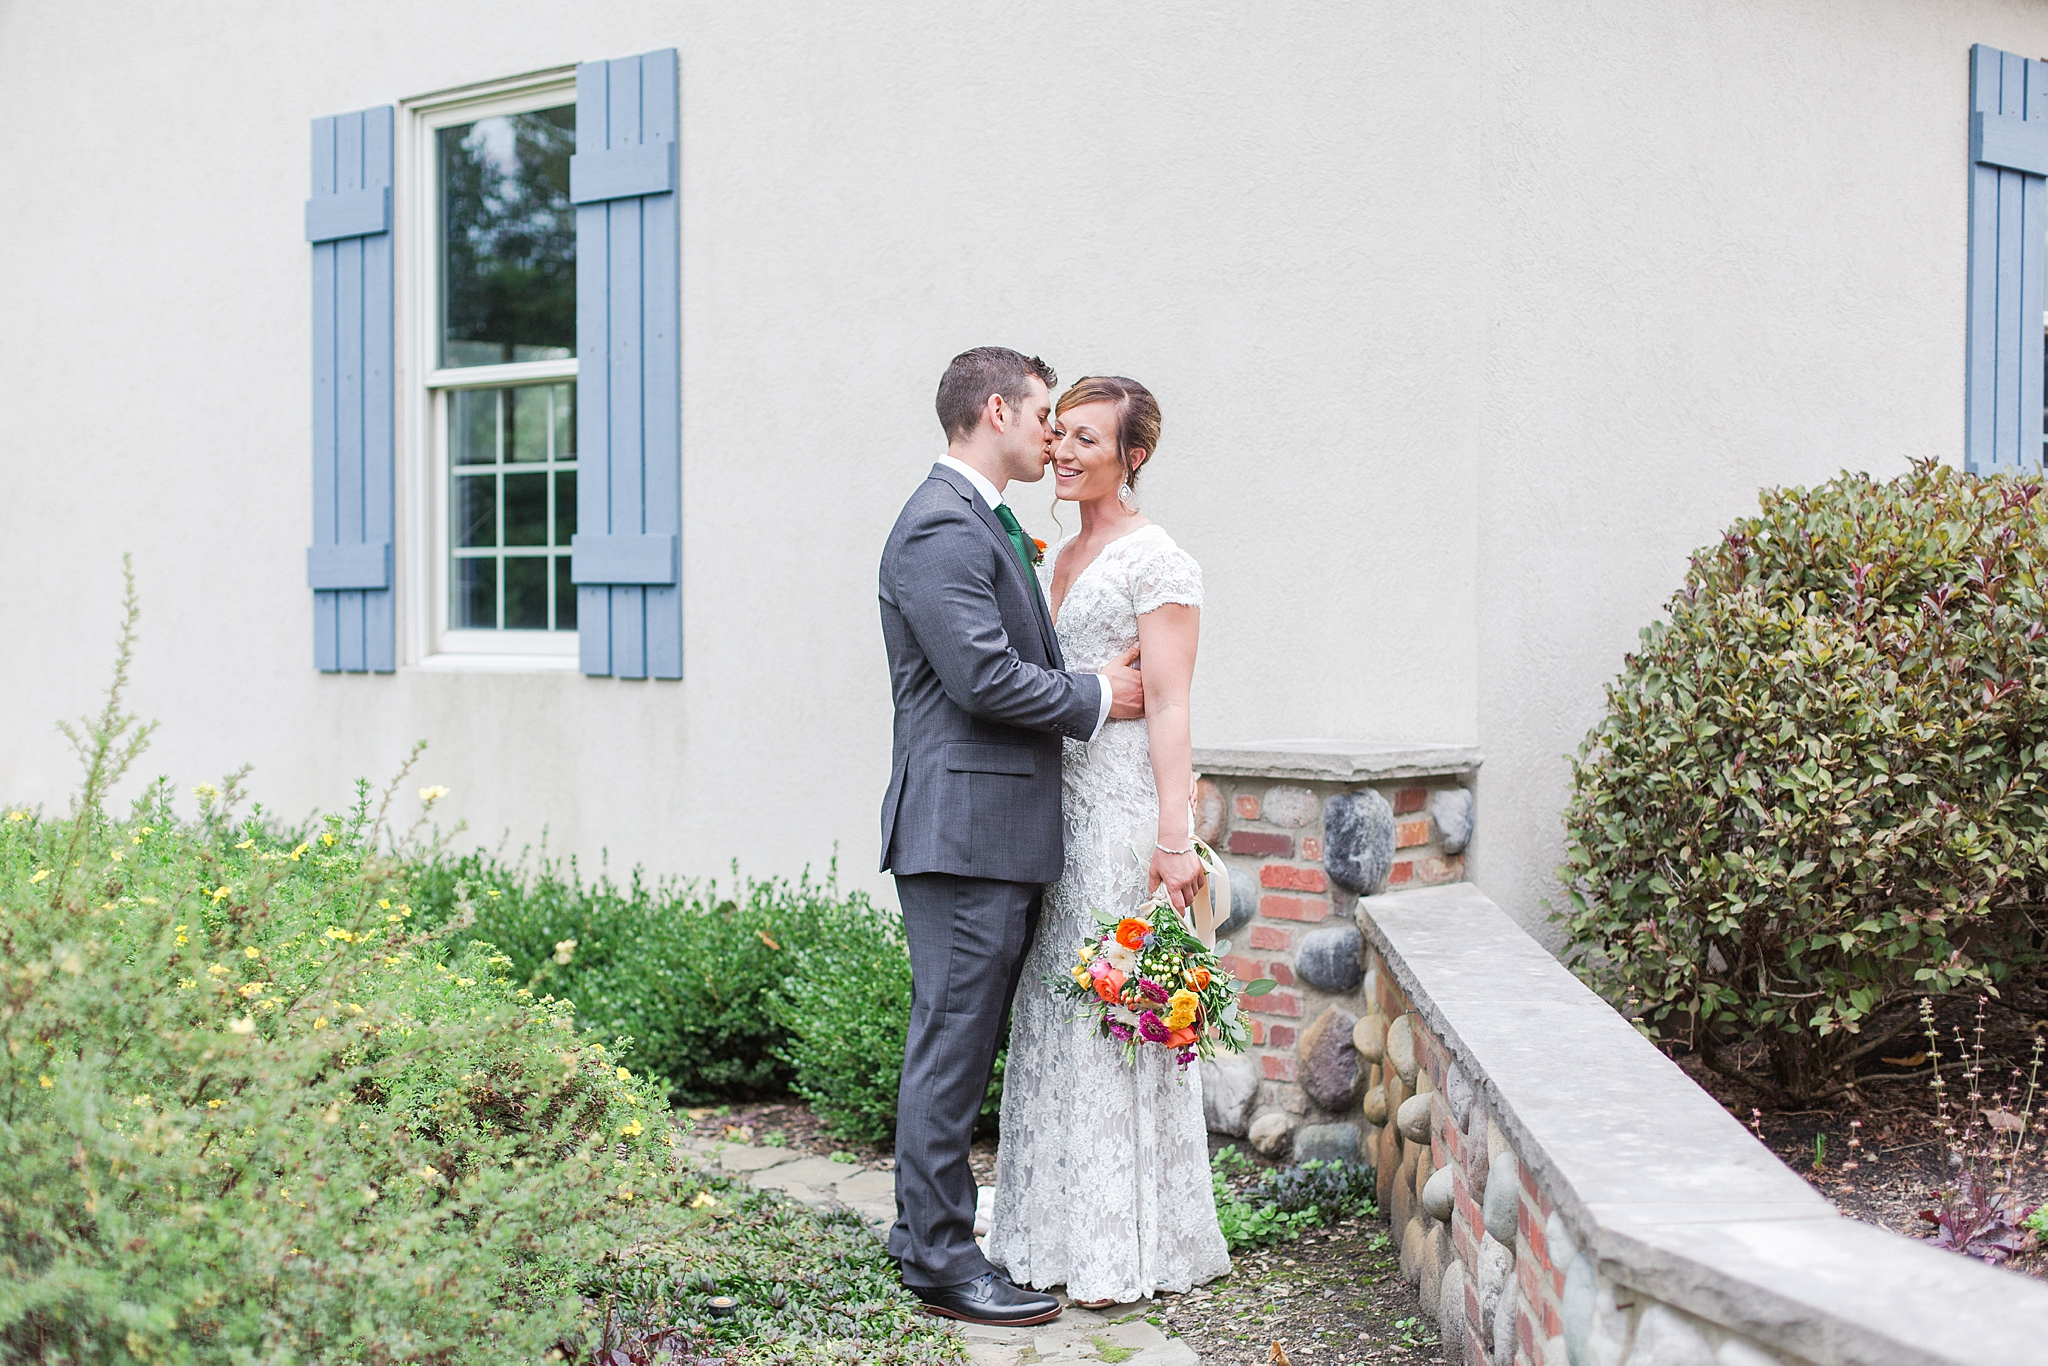 private-lakefront-estate-wedding-photography-in-ann-arbor-michigan-by-courtney-carolyn-photography_0017.jpg